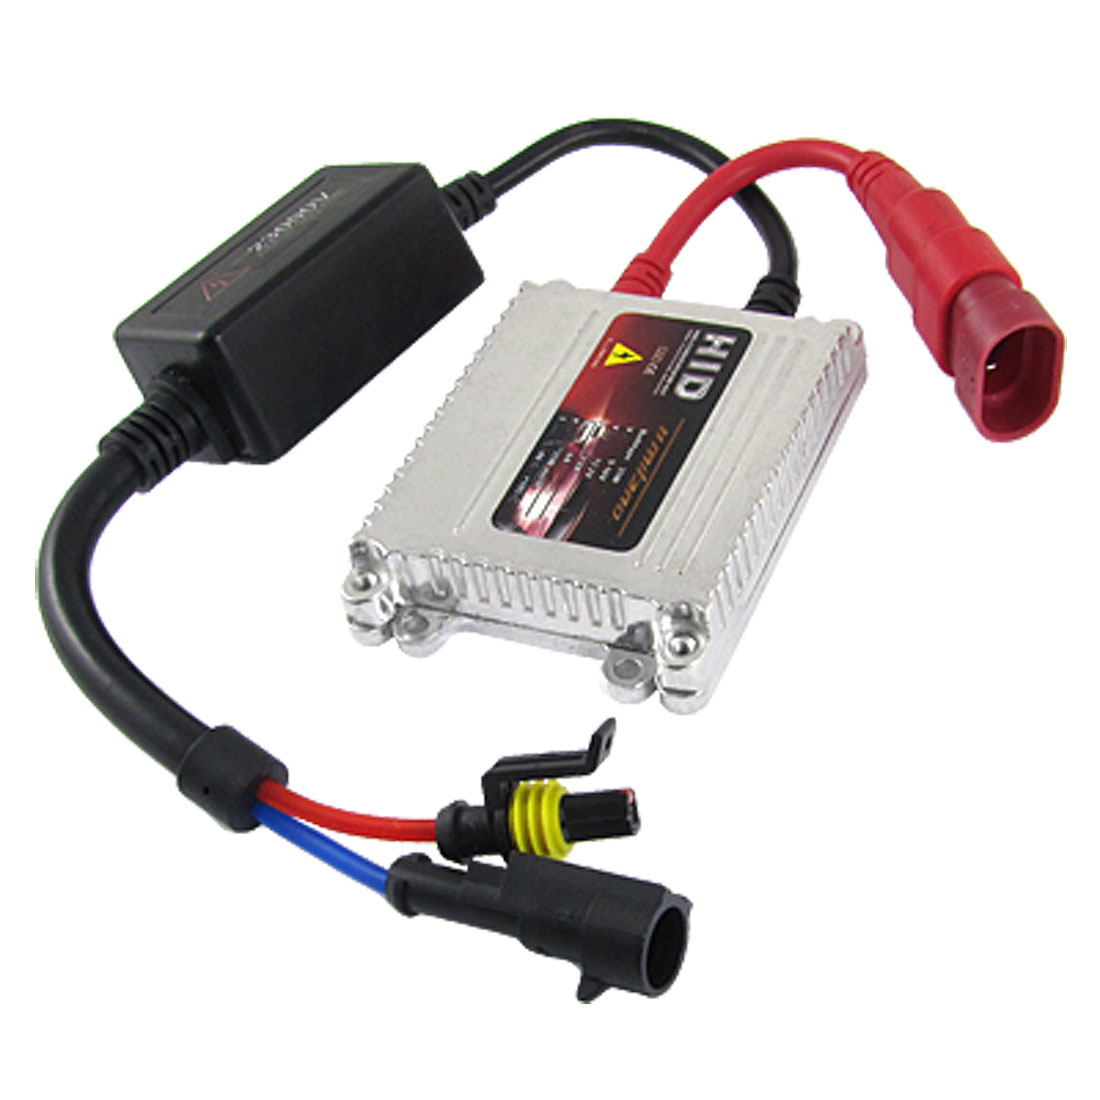 Silver Tone 35W HID Xenon Slim Ballast Conversion Kit for Car Headlight